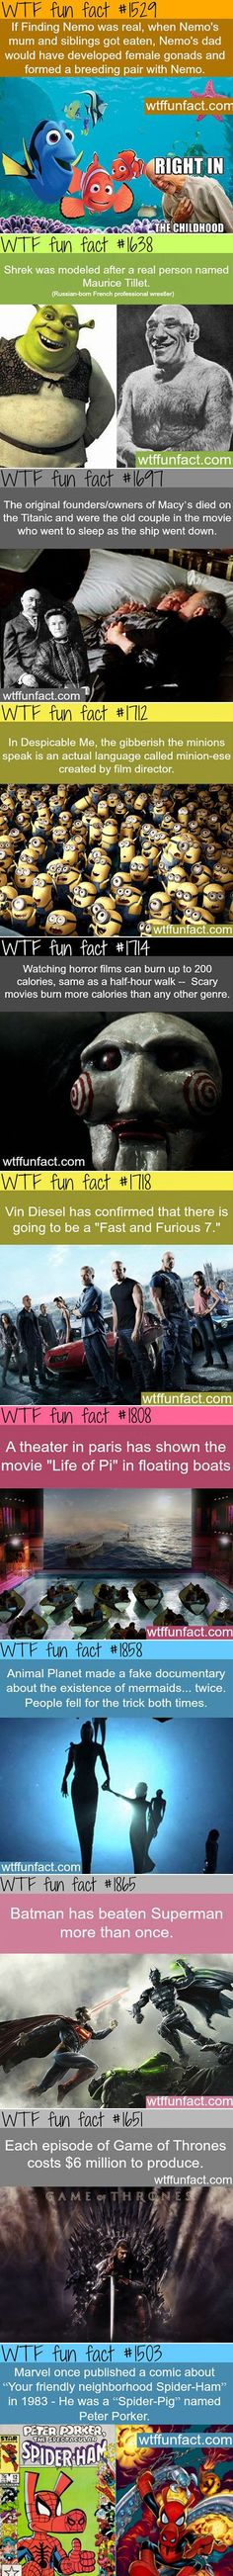 36 Fun and Random Movie Facts That Might Surprise You - TechEBlog